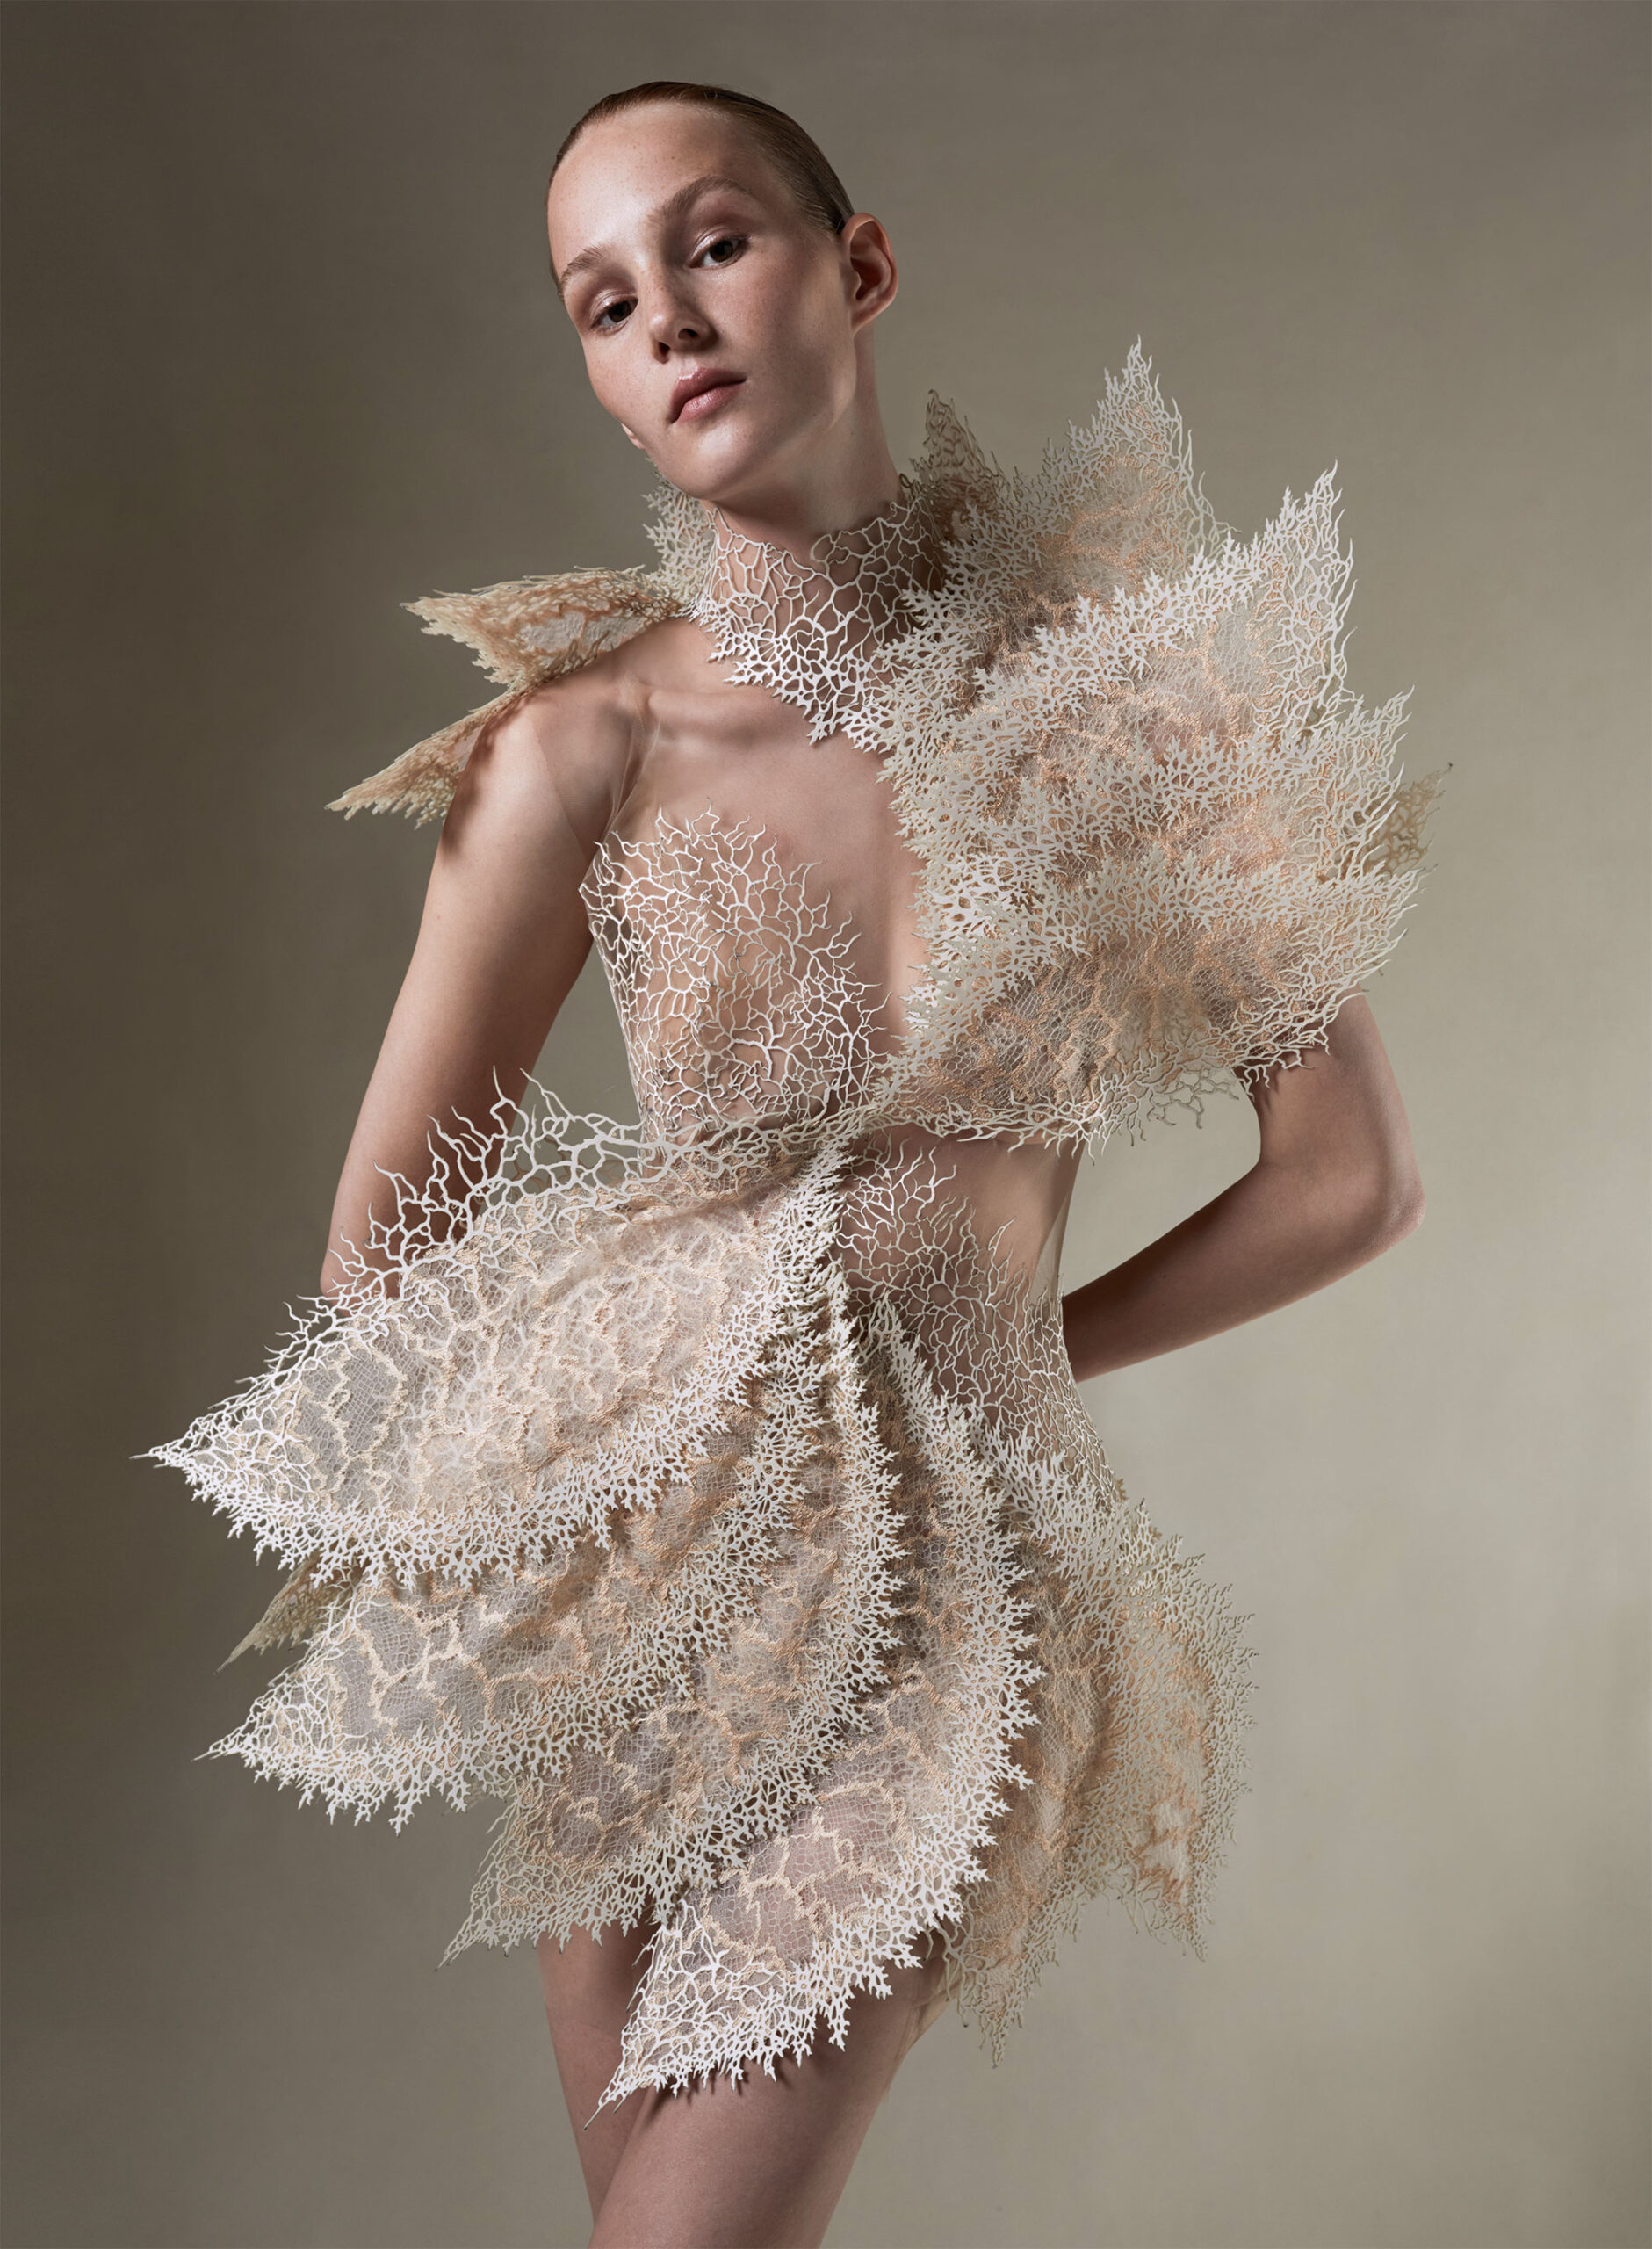 Earthrise: A Striking New Collection by Iris Van Herpen Recycles Plastic Waste into Sculptural Garments